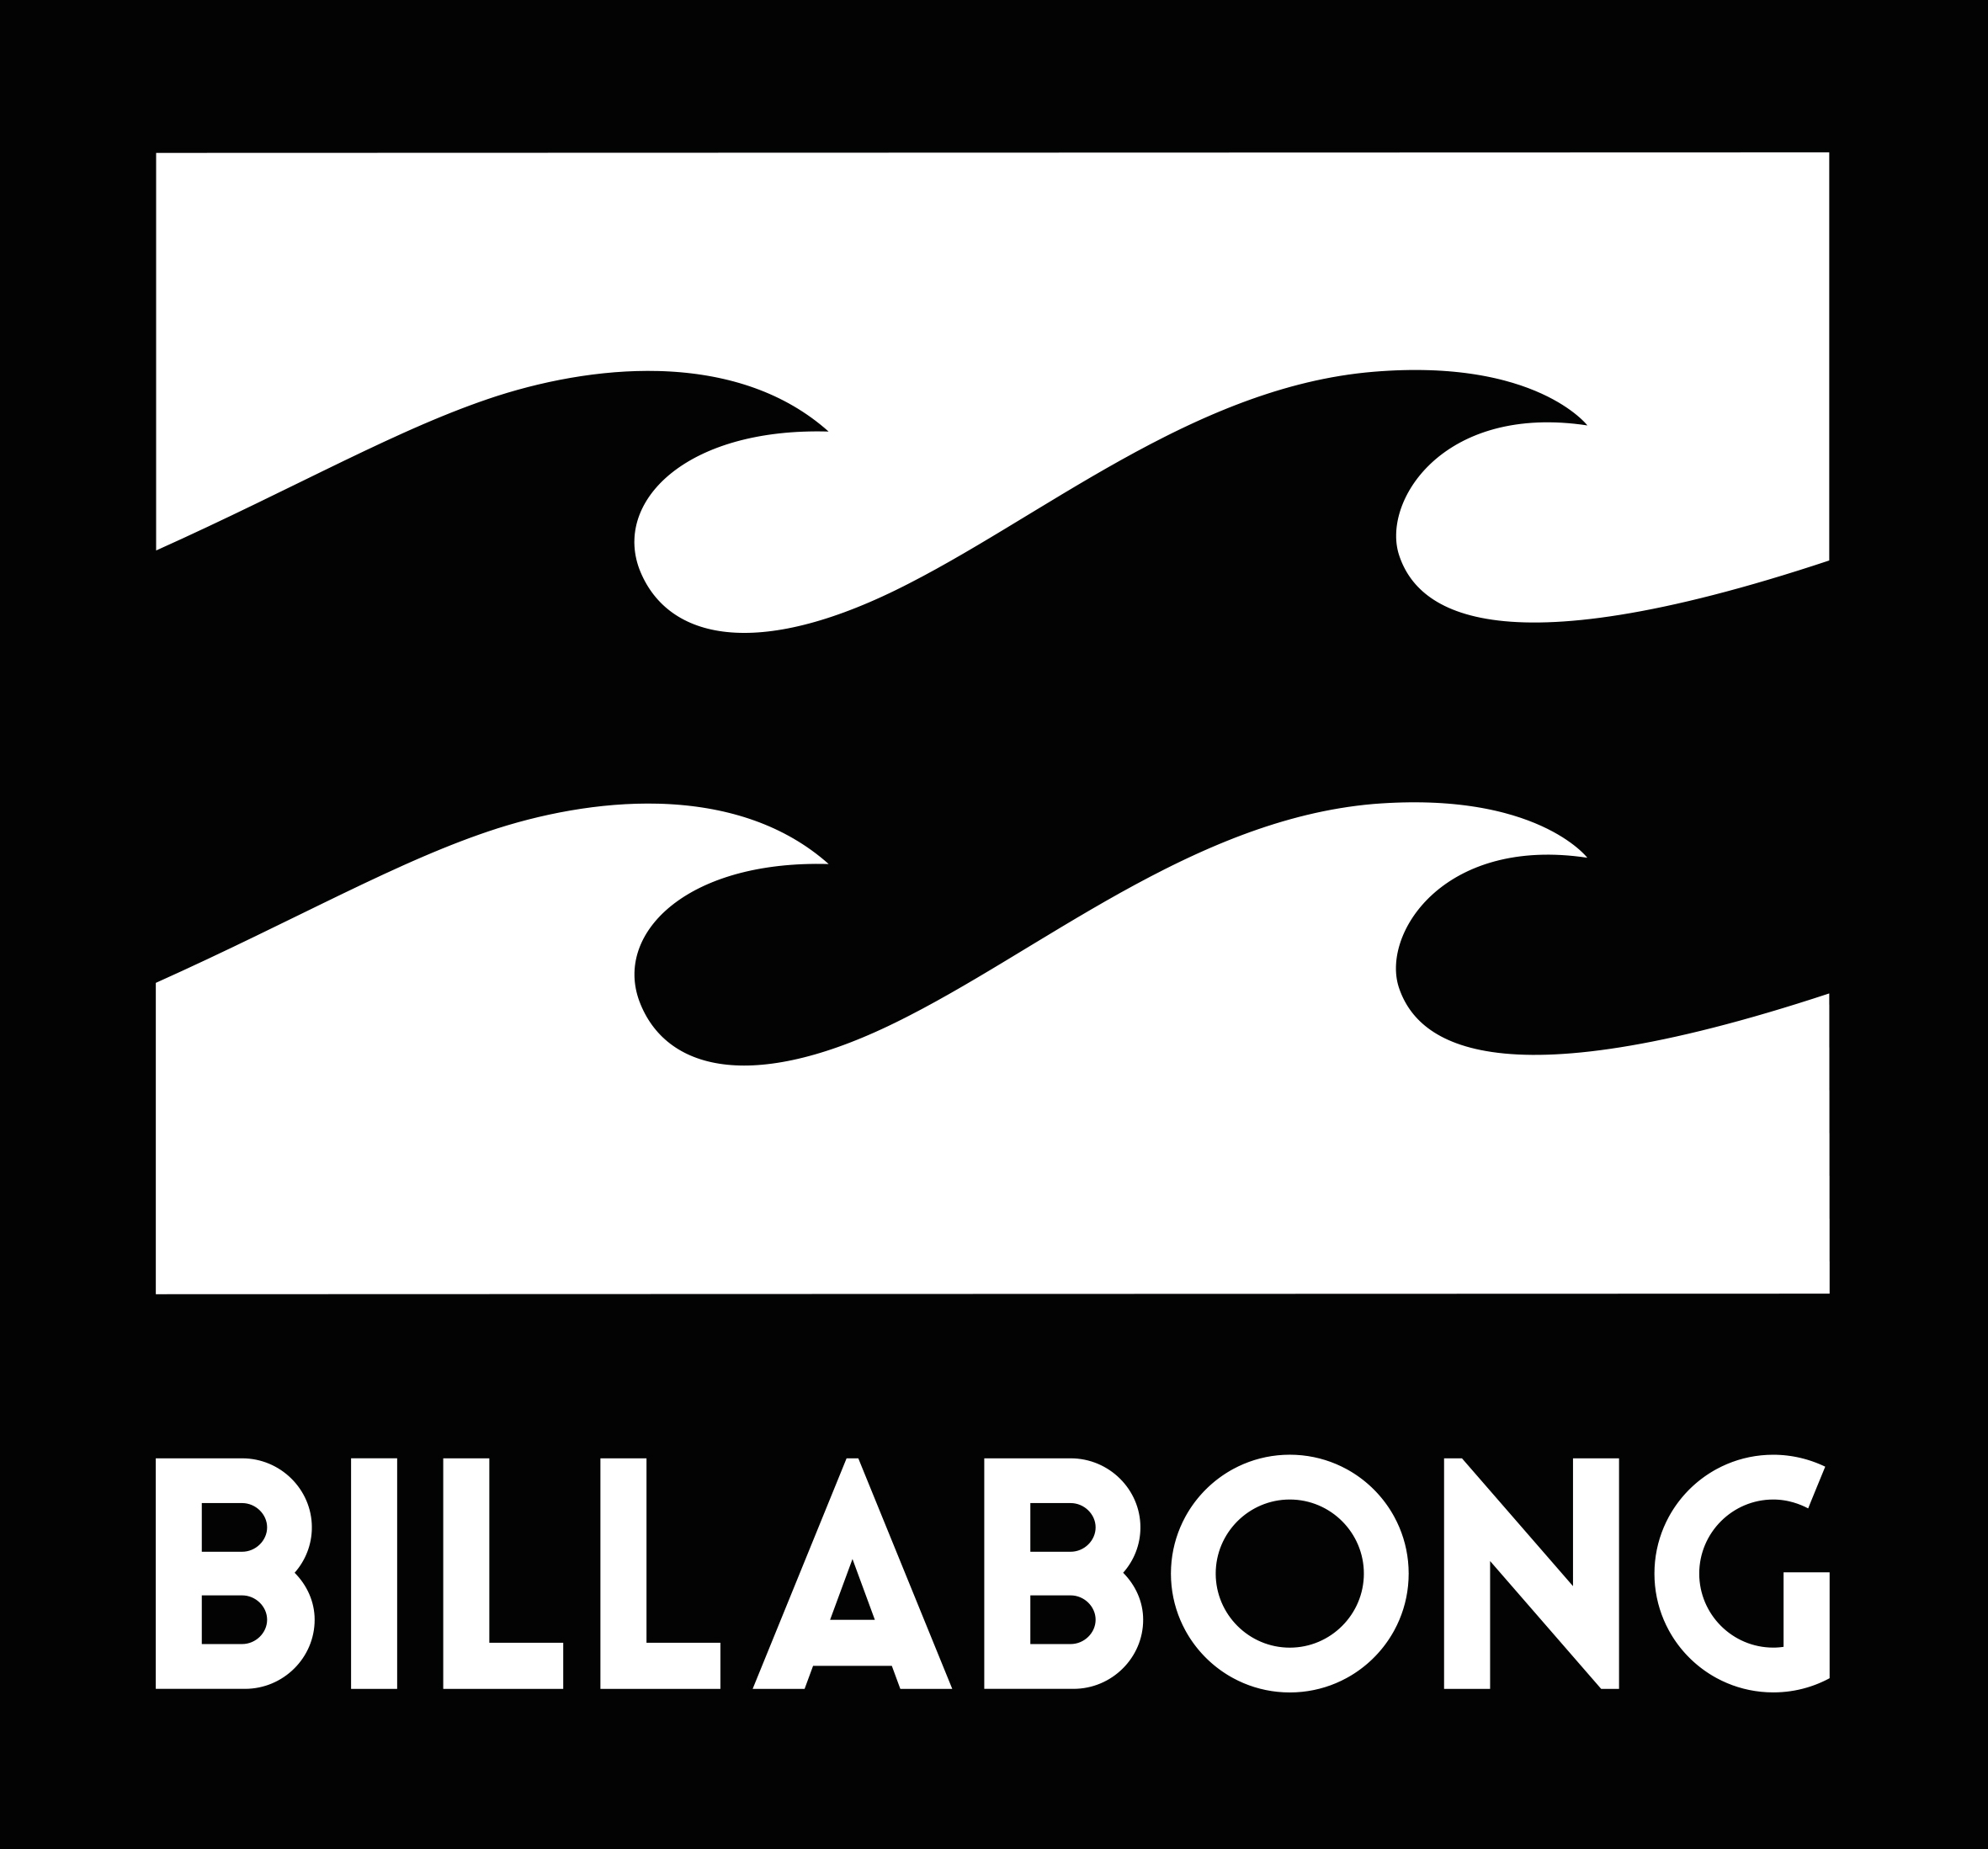 Billabong Help Centre home page